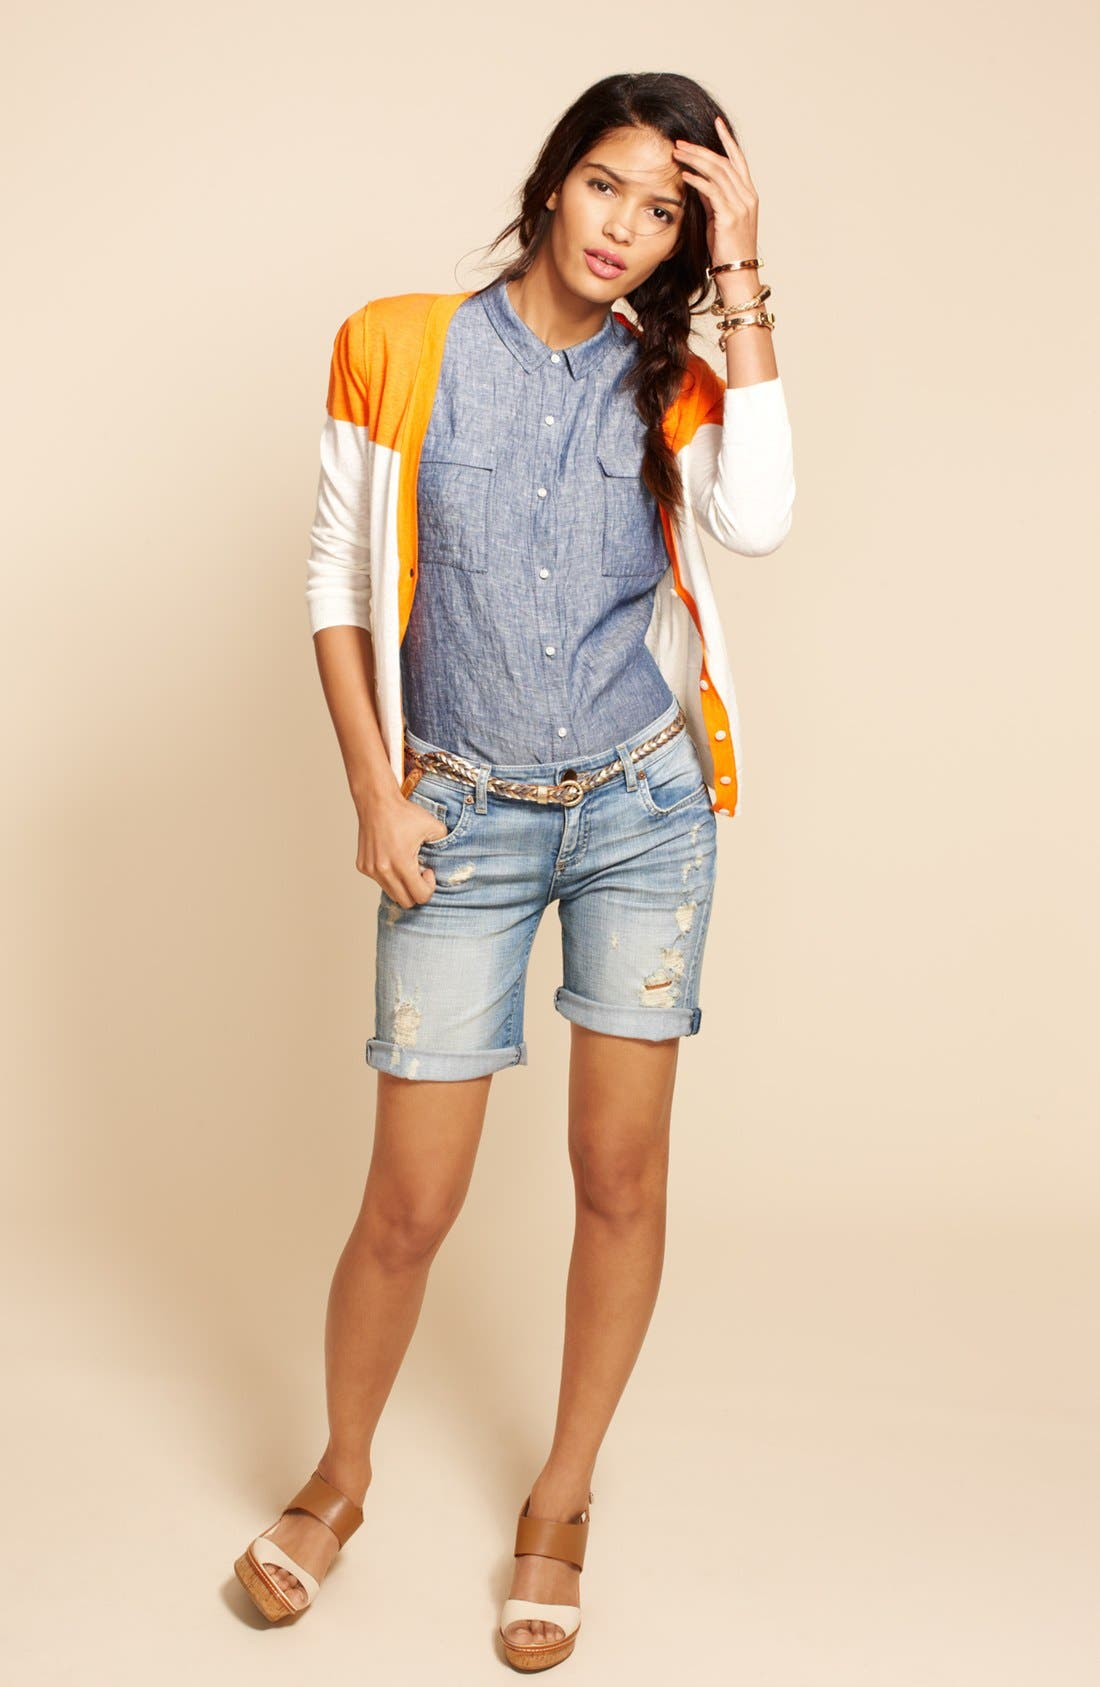 Main Image - Caslon® Cardigan, Top & KUT from the Kloth Shorts